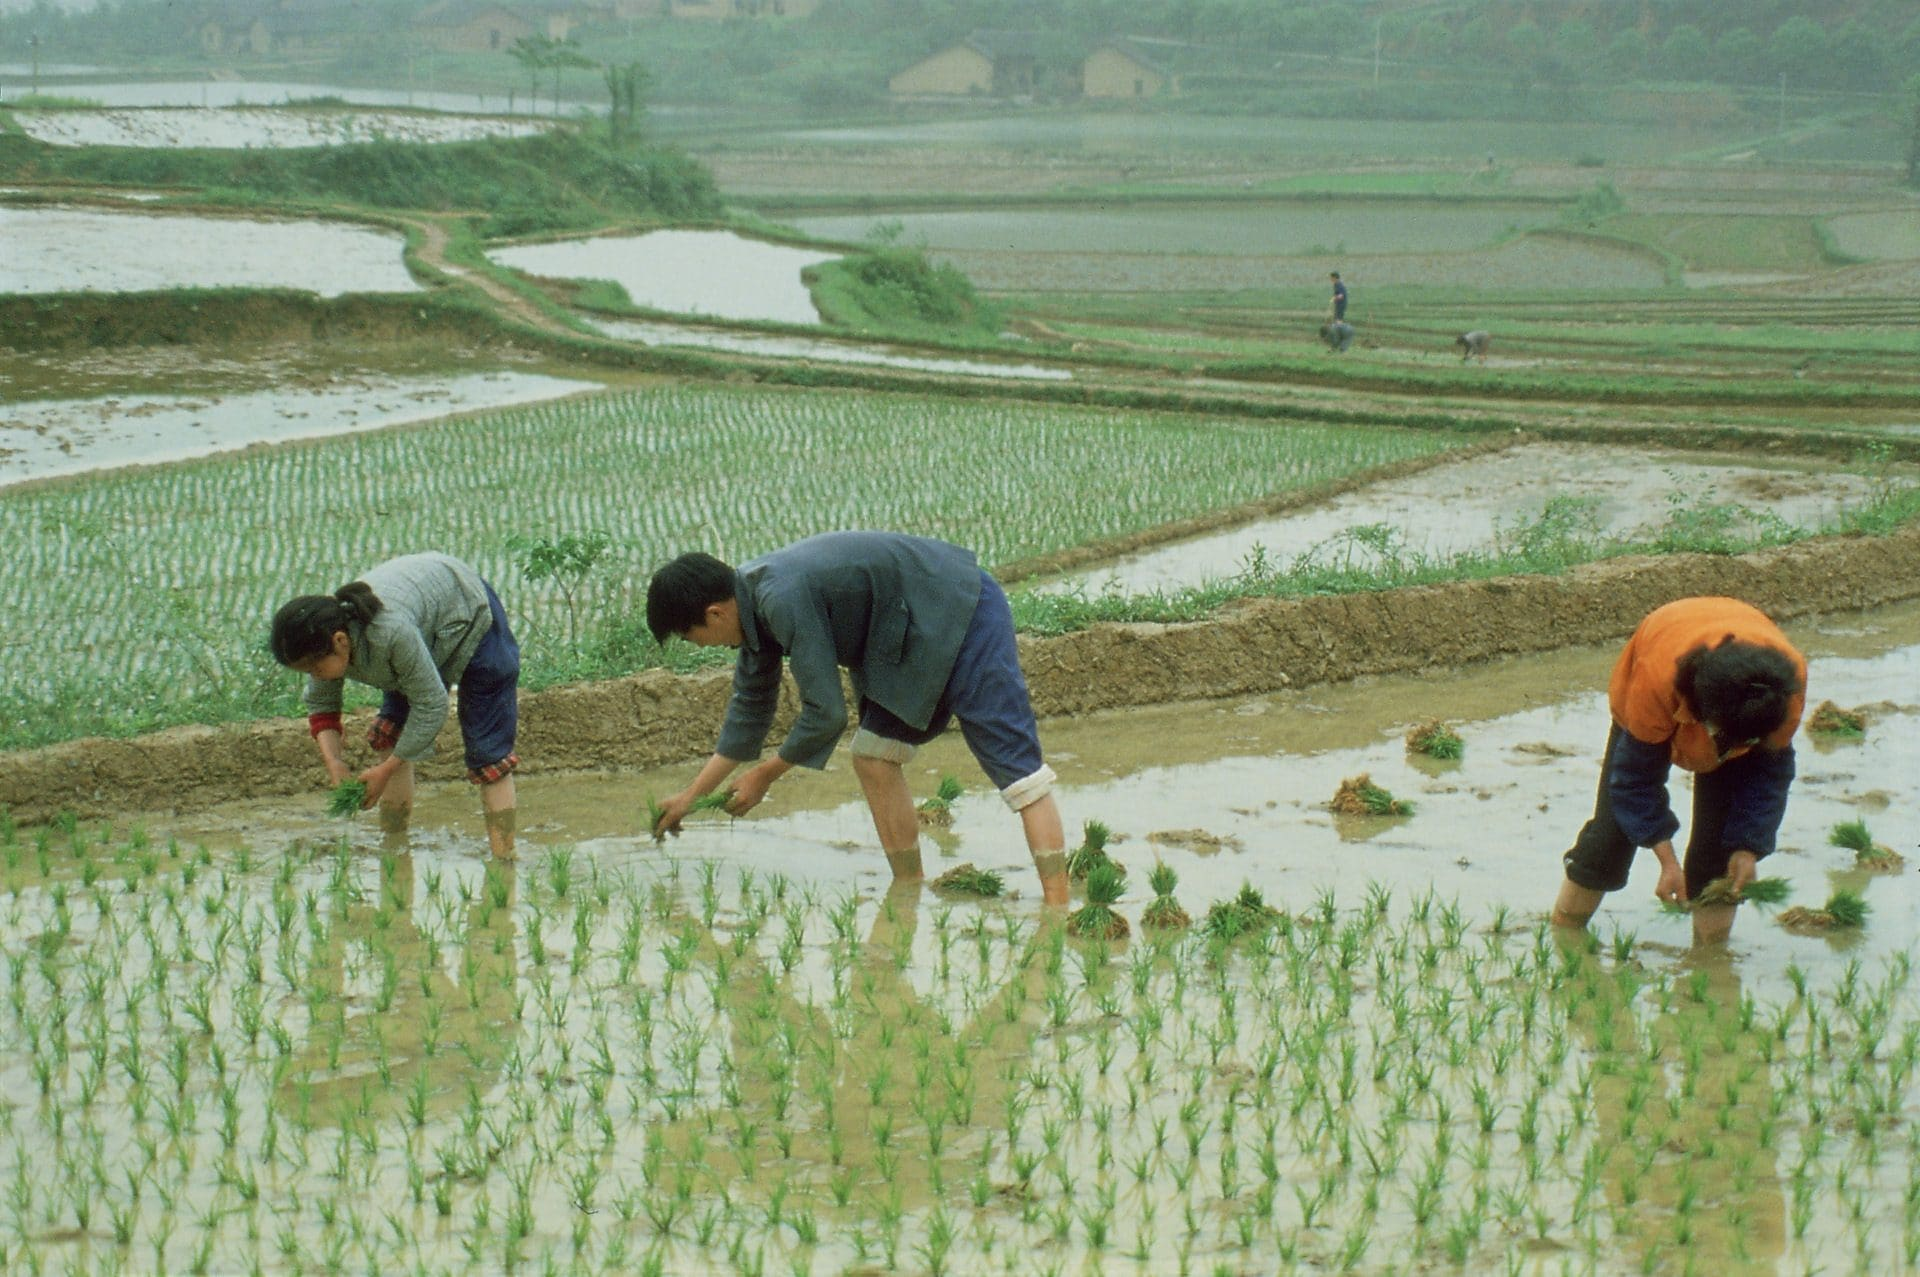 Farmers transplant rice seedlings in China's Hunan Province in Escape from Hunger (1985), which examines the challenge to provide enough food faced by rural populations in the Third World.